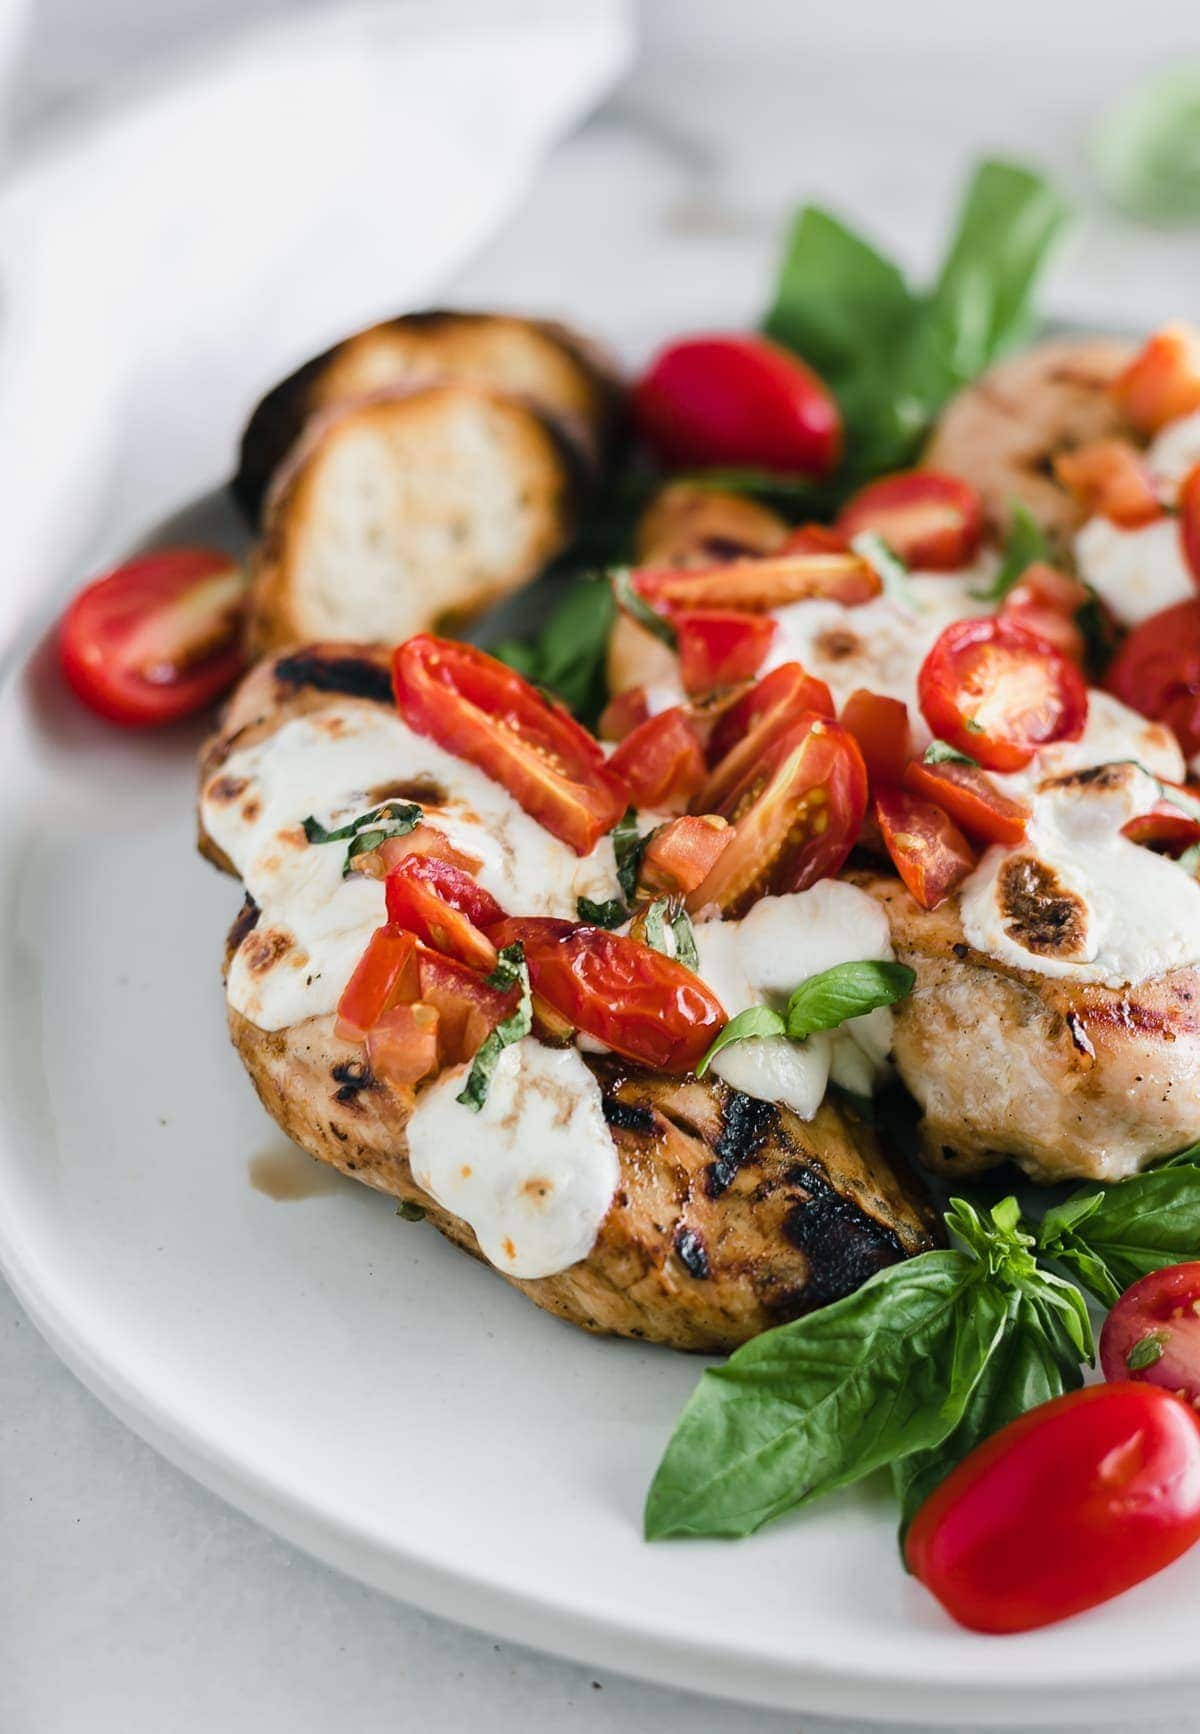 3 Tomato basil bruschetta Chicken breasts on a round cutting board with basil leaves.